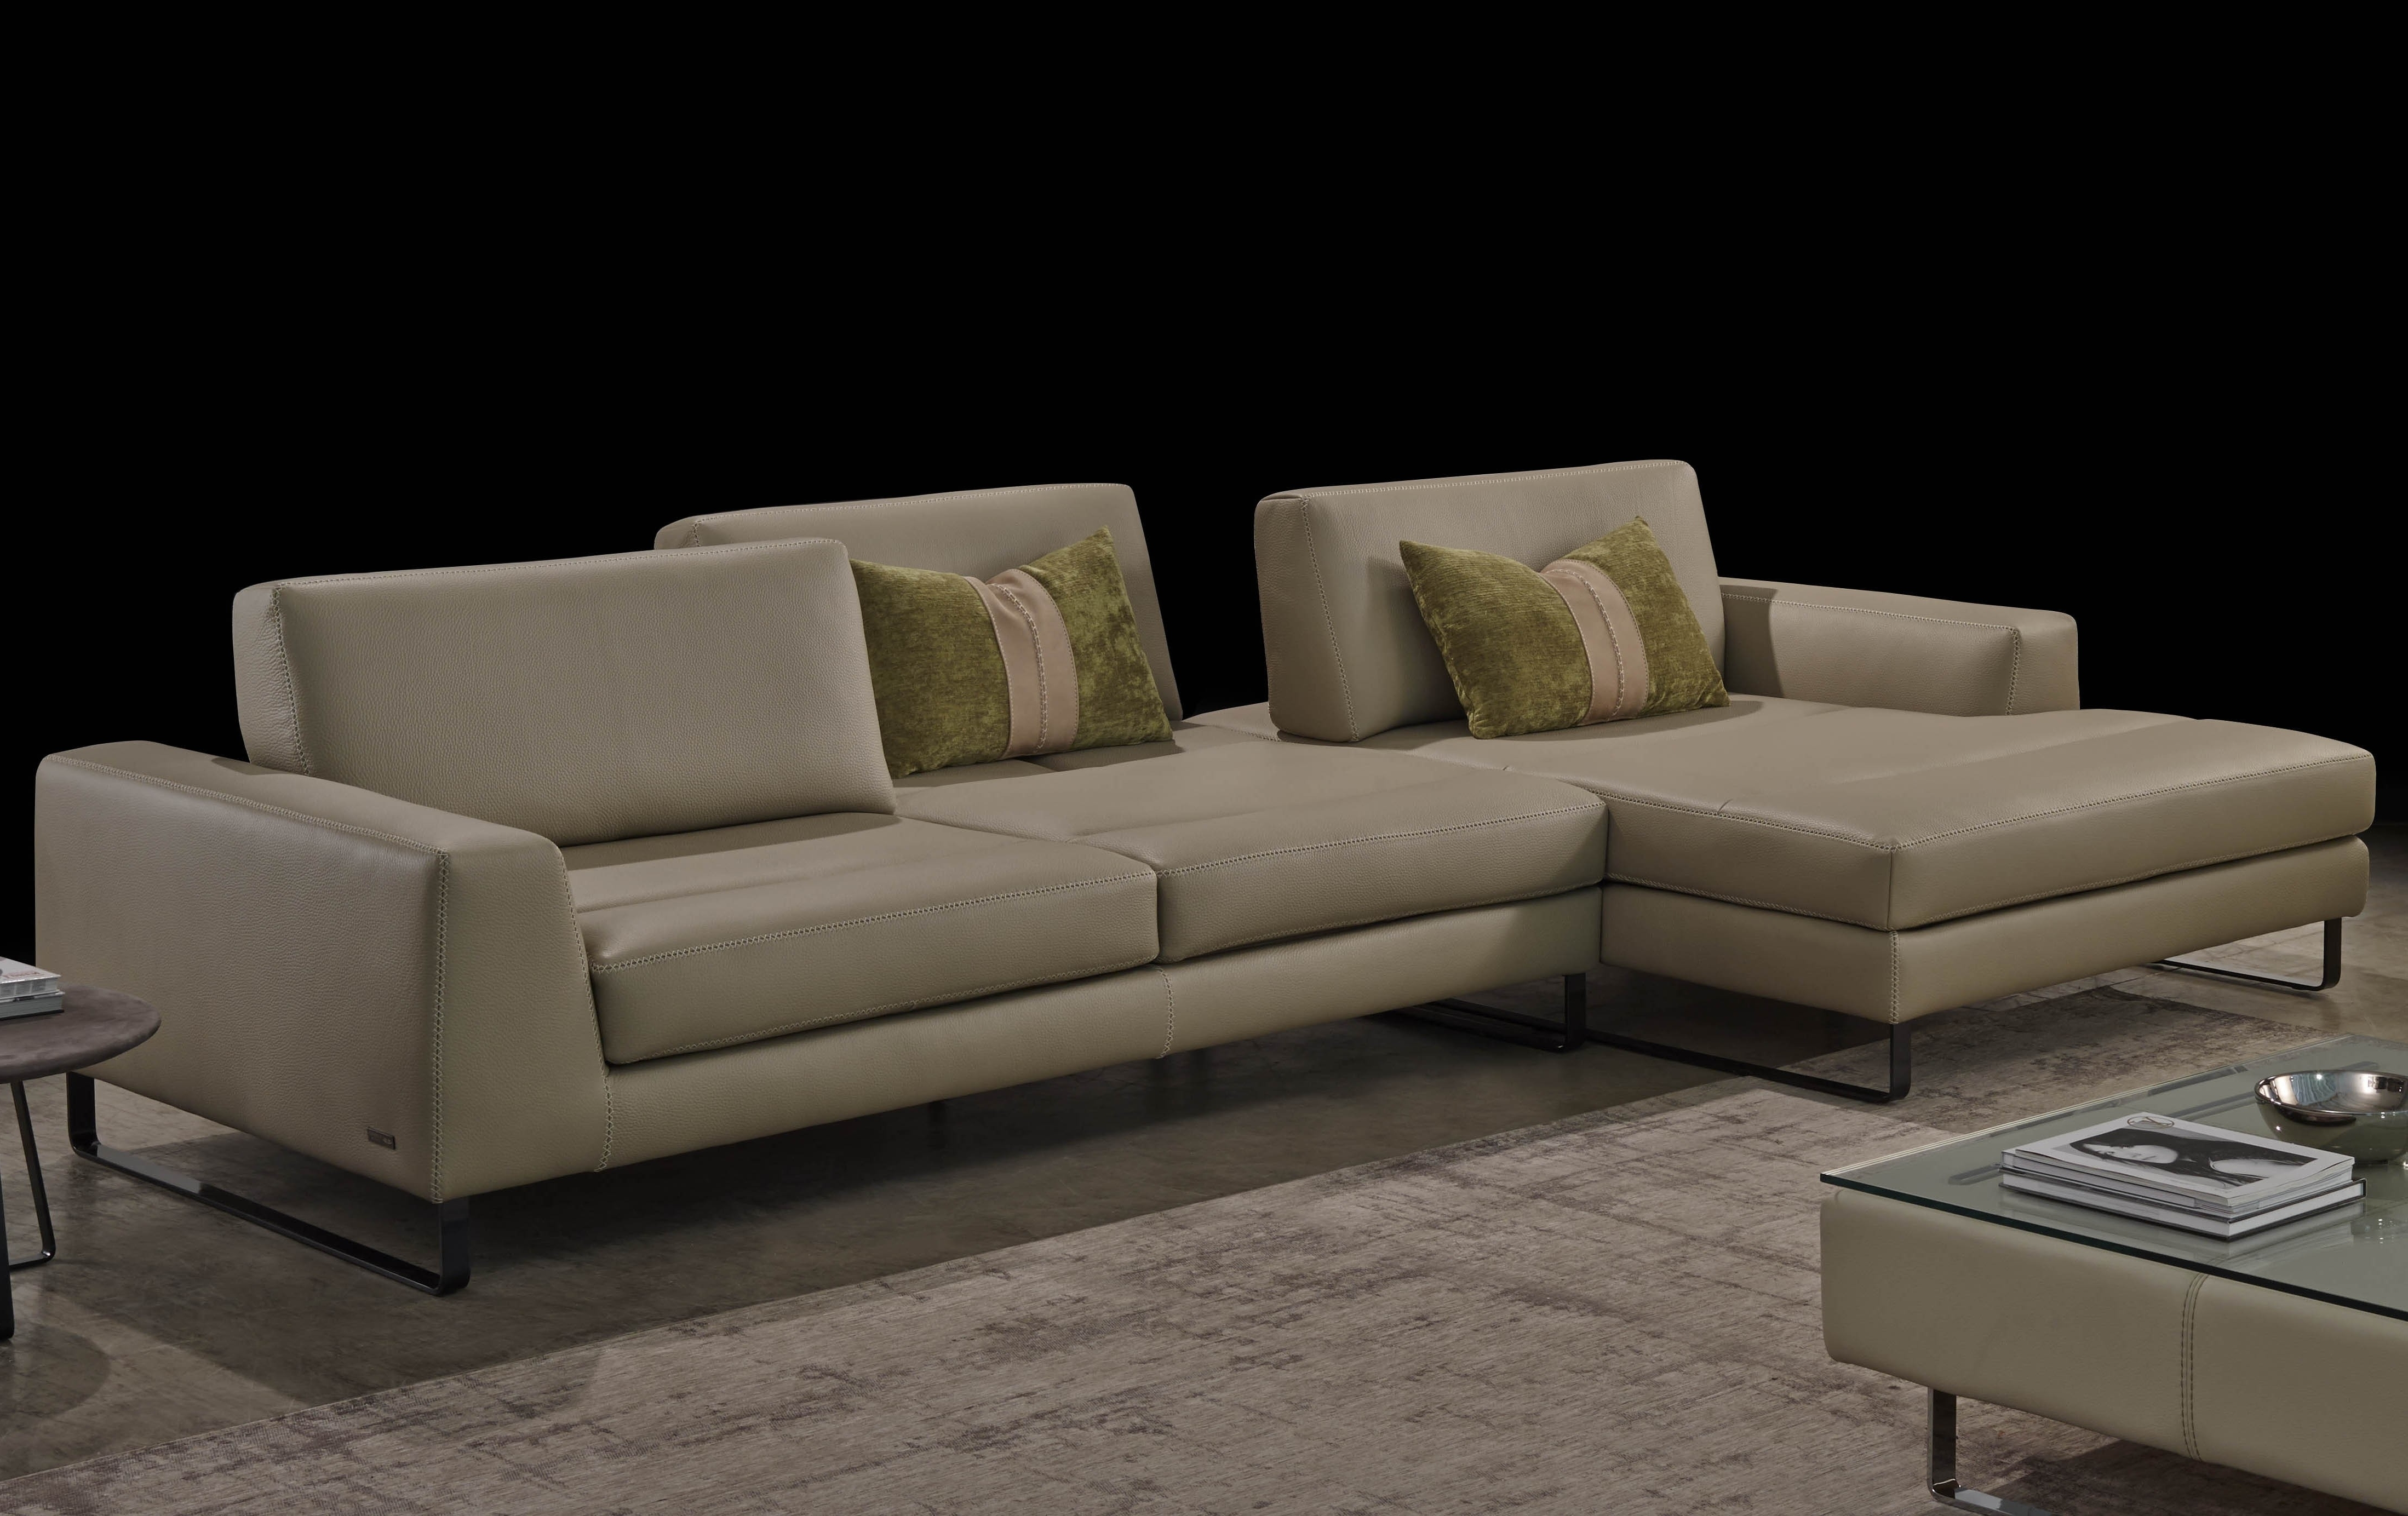 2018 Latest Nashua Nh Sectional Sofas Within Nh Sectional Sofas (Gallery 4 of 10)